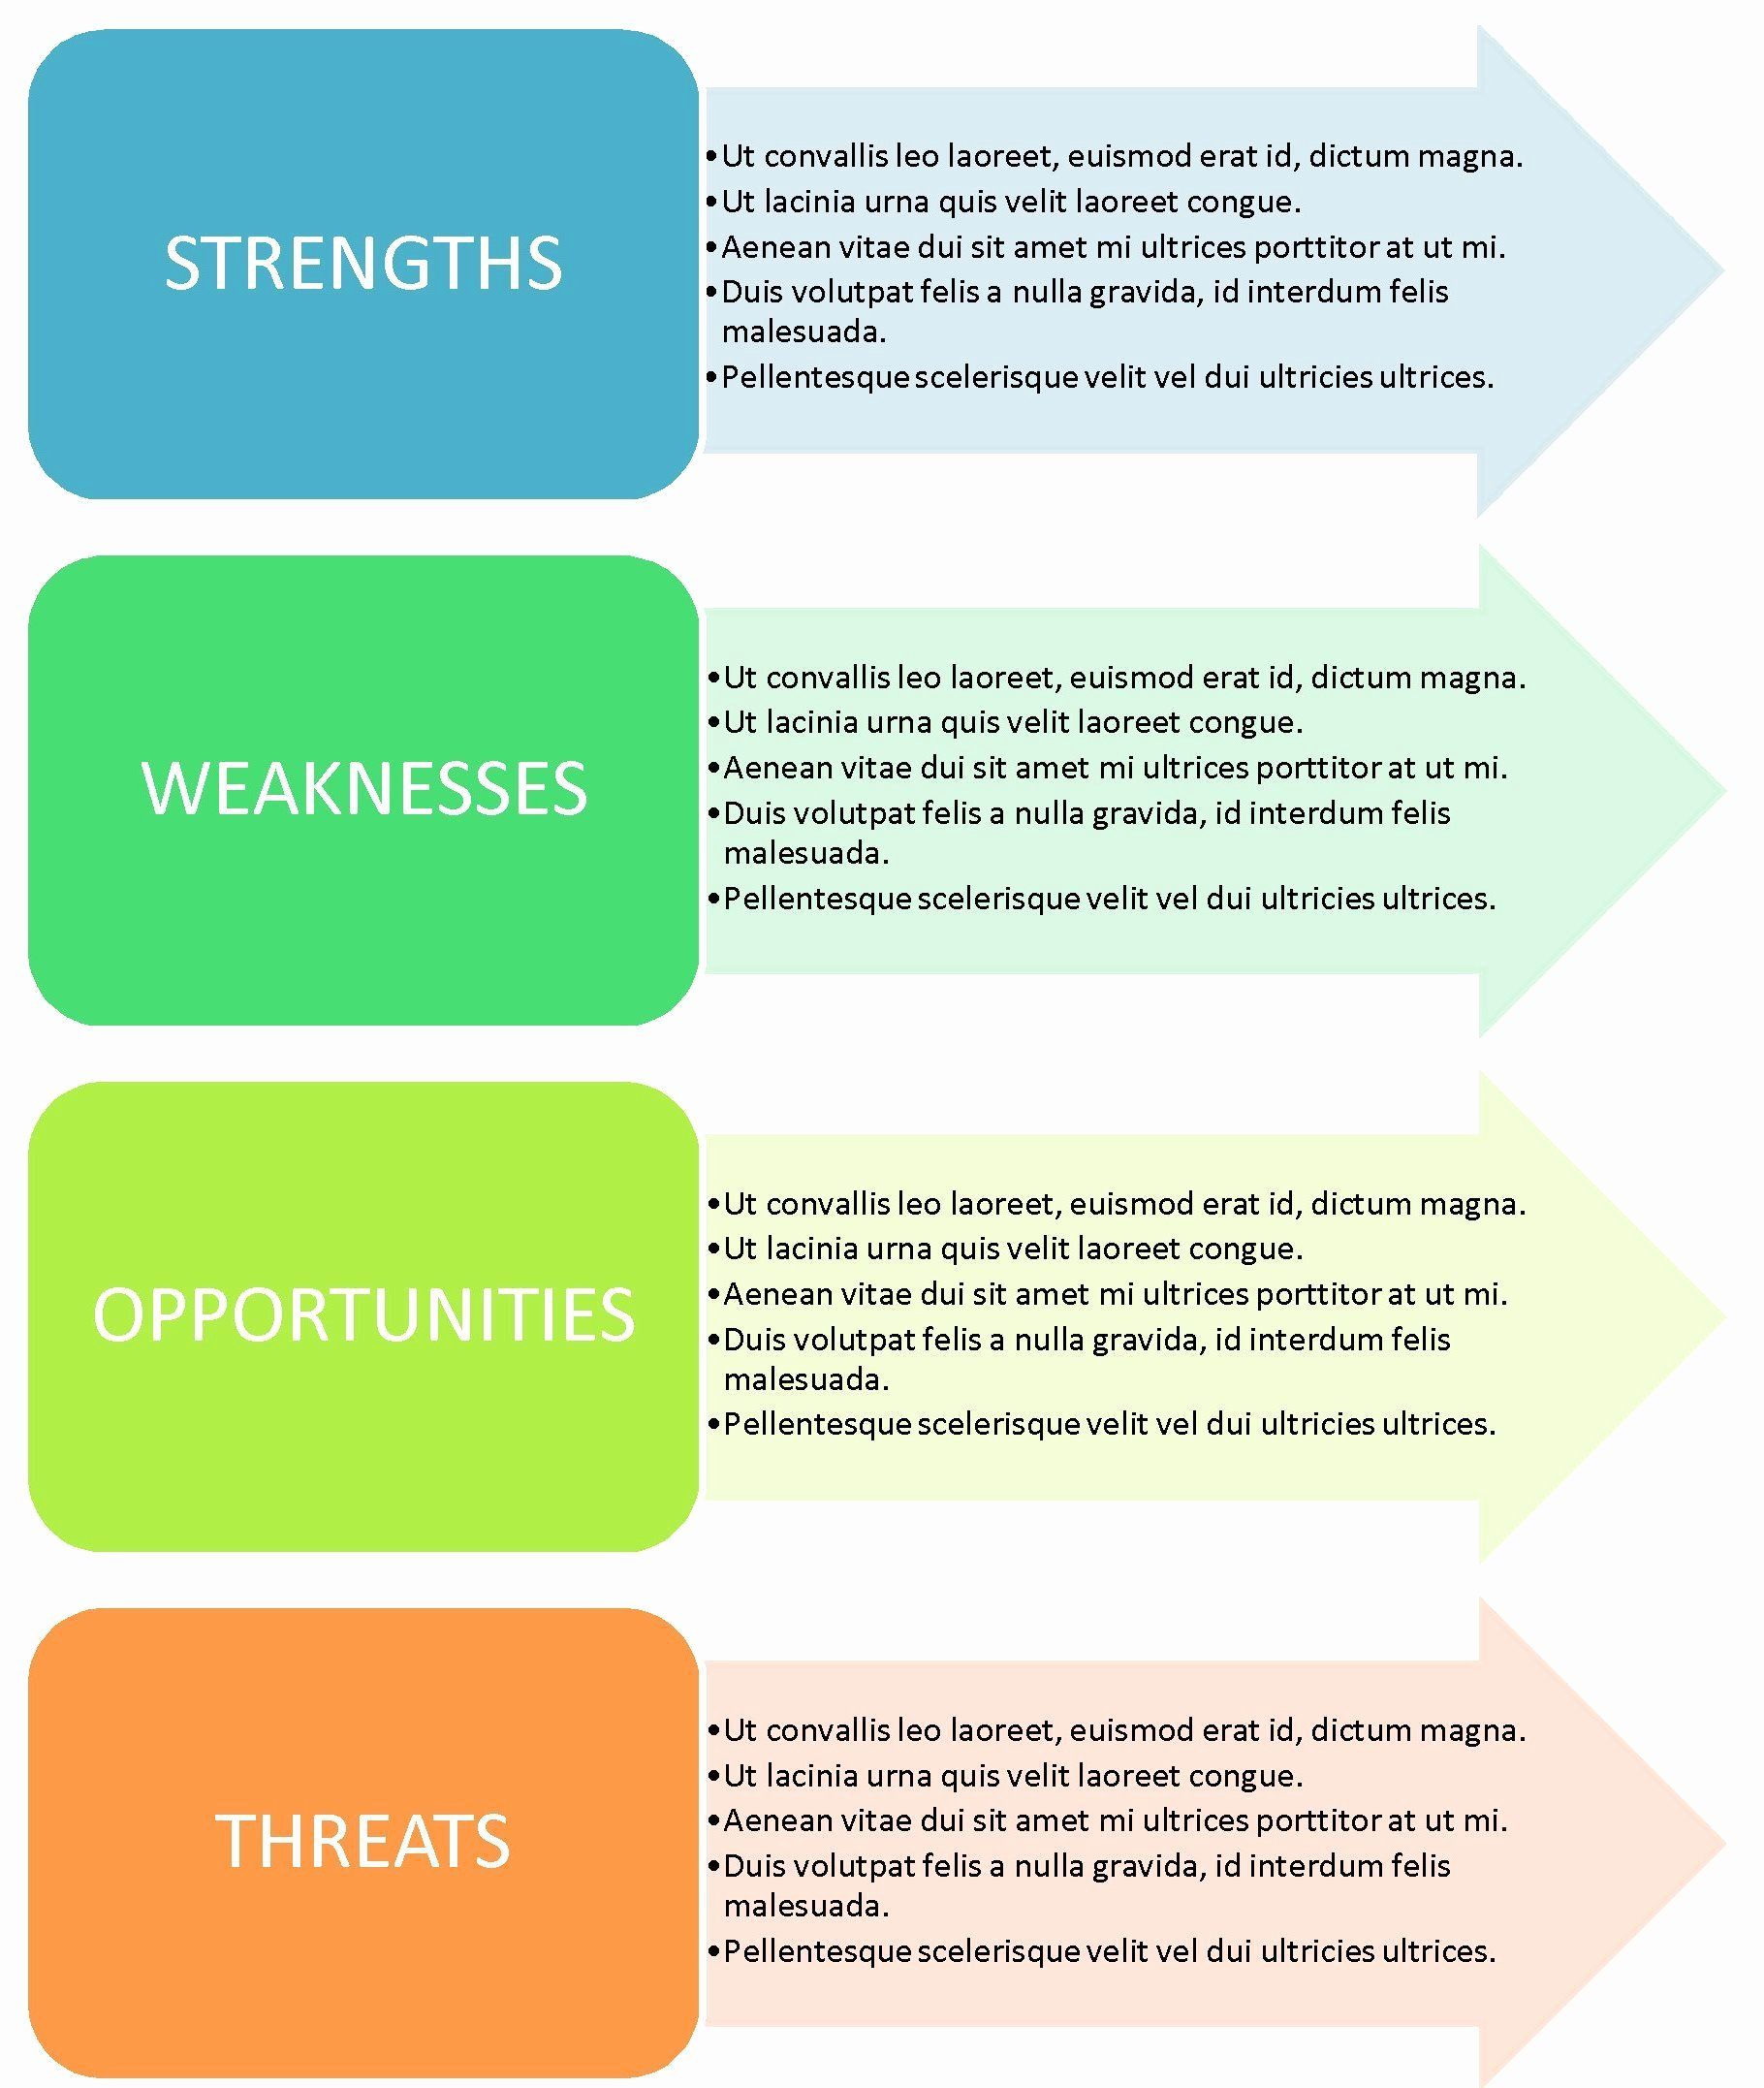 Swot Analysis Template Word Awesome 40 Free Swot Analysis Templates In Word Demplates